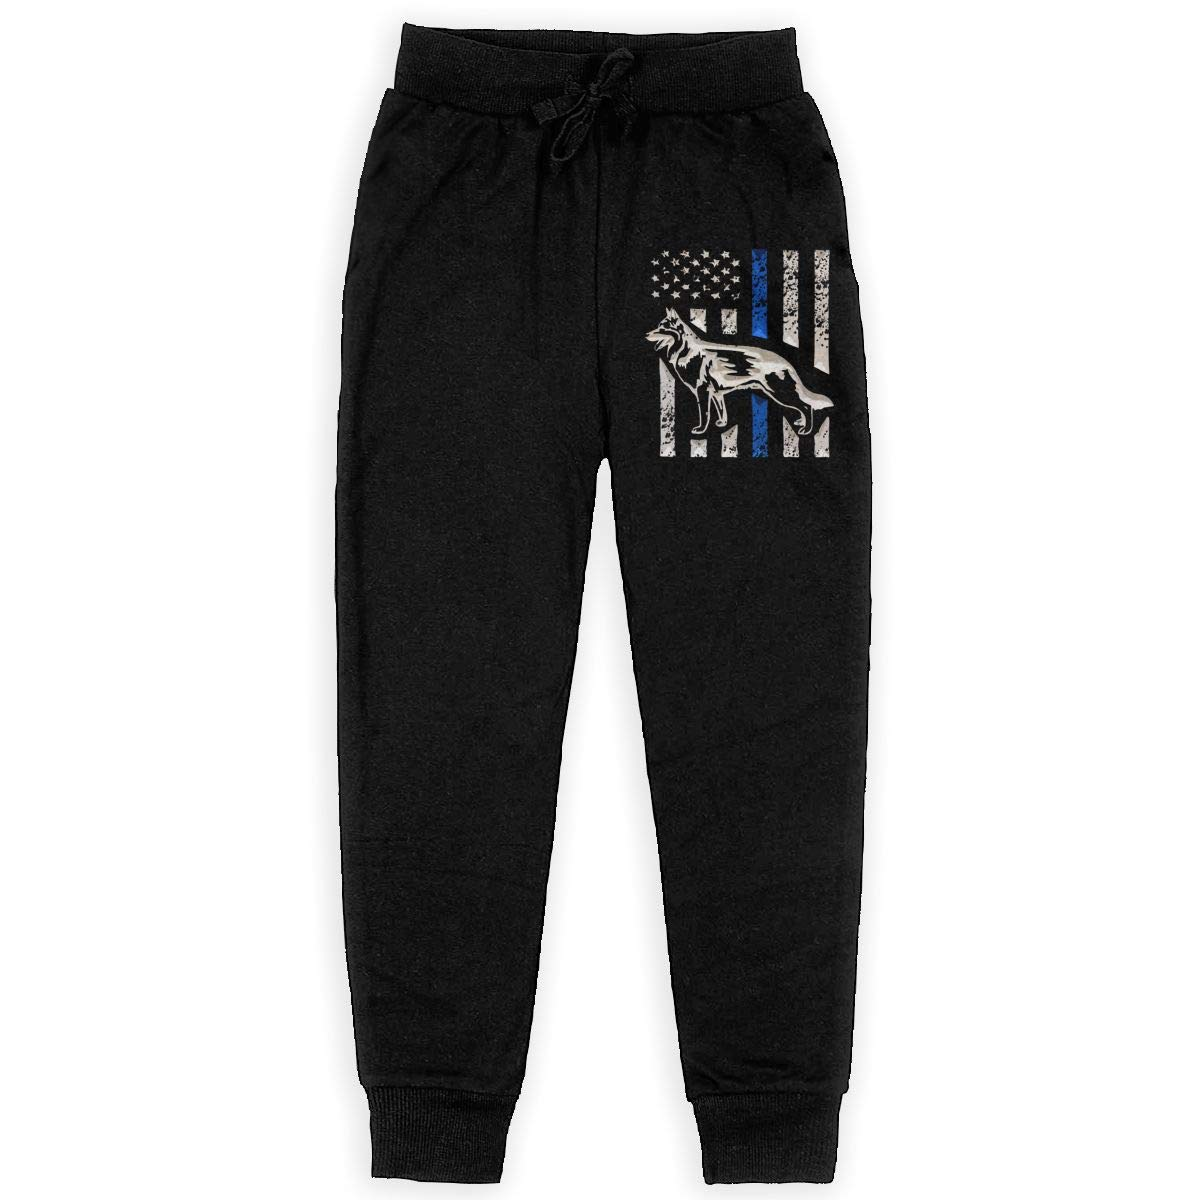 Boys Sweatpants Blue Lives Matter Thin Line Dog Joggers Sport Training Pants Trousers Black